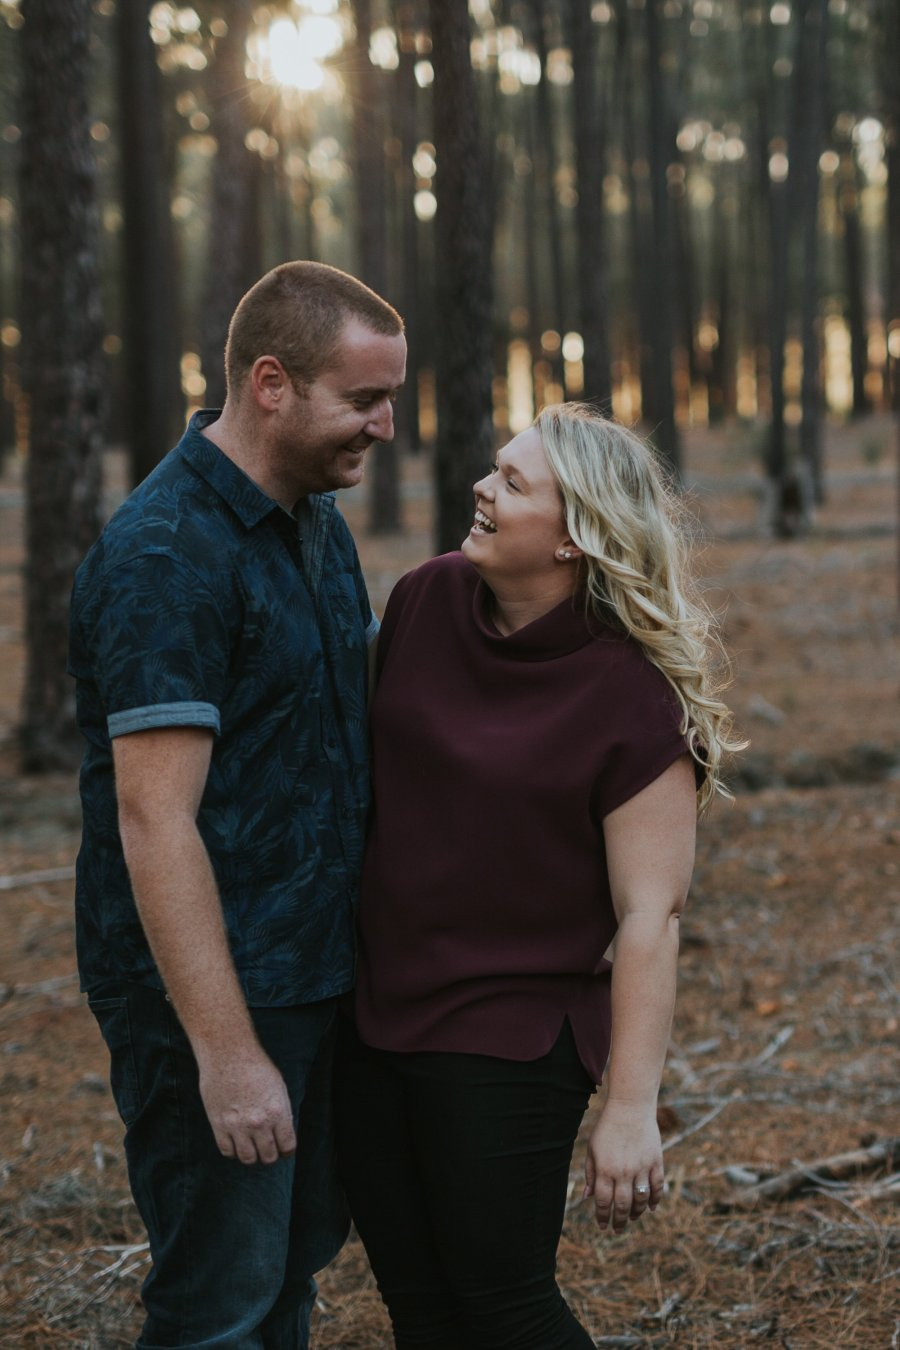 Perth Wedding Photographer | Pines Forrest Engagment | Ebony Blush Photography | Corry + Reece | Pre Wedding86